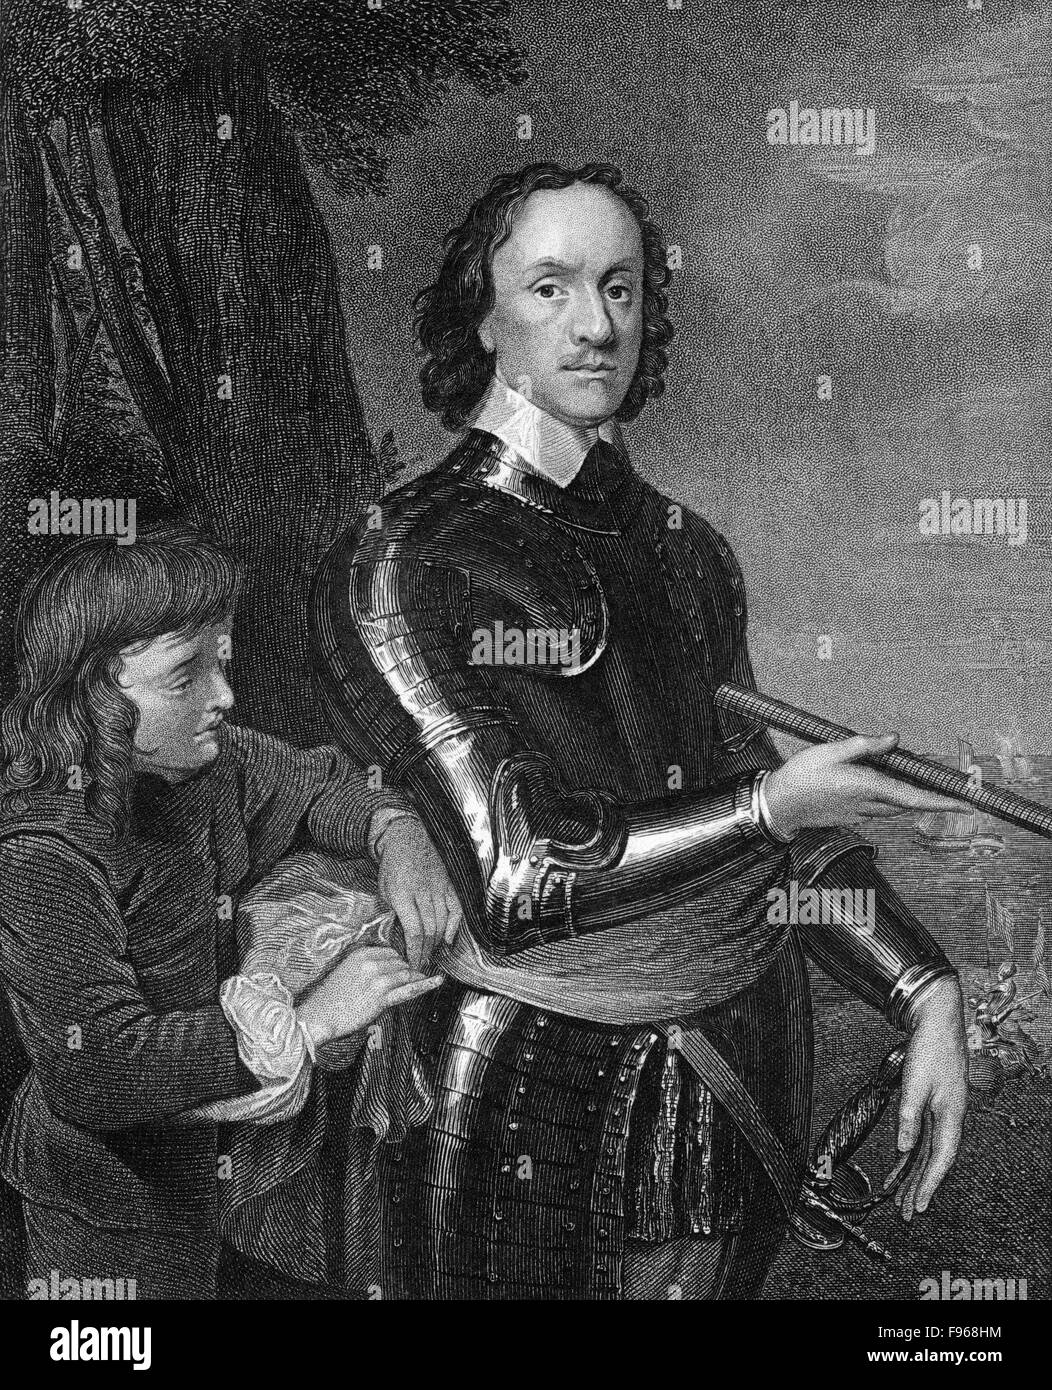 Oliver Cromwell, 1599 - 1658, the founder of the English republic, Lord Protector of England, Scotland and Ireland - Stock Image